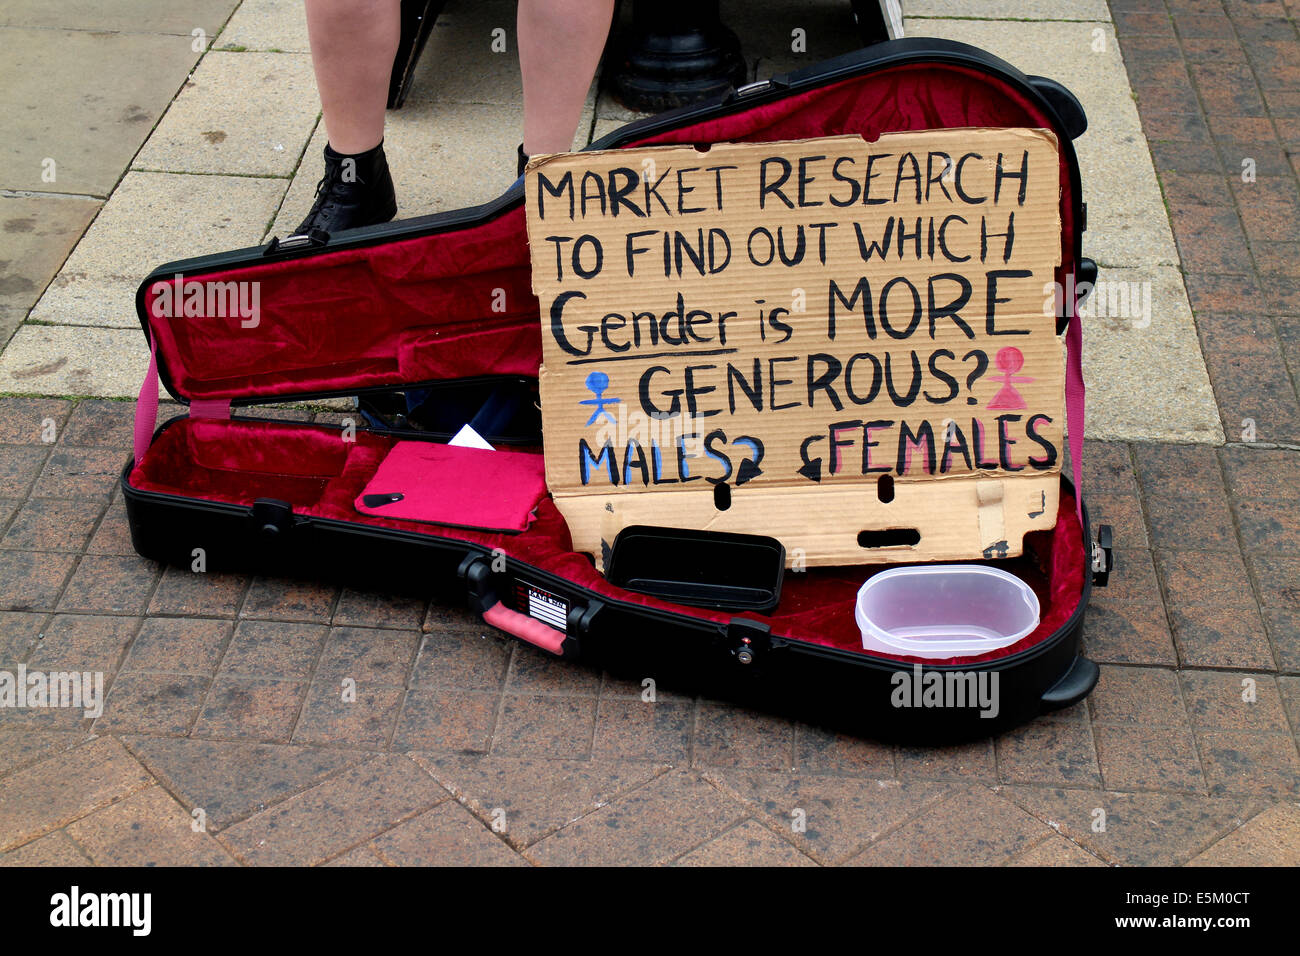 Busker`s guitar case with sign, Stratford-upon-Avon, UK - Stock Image